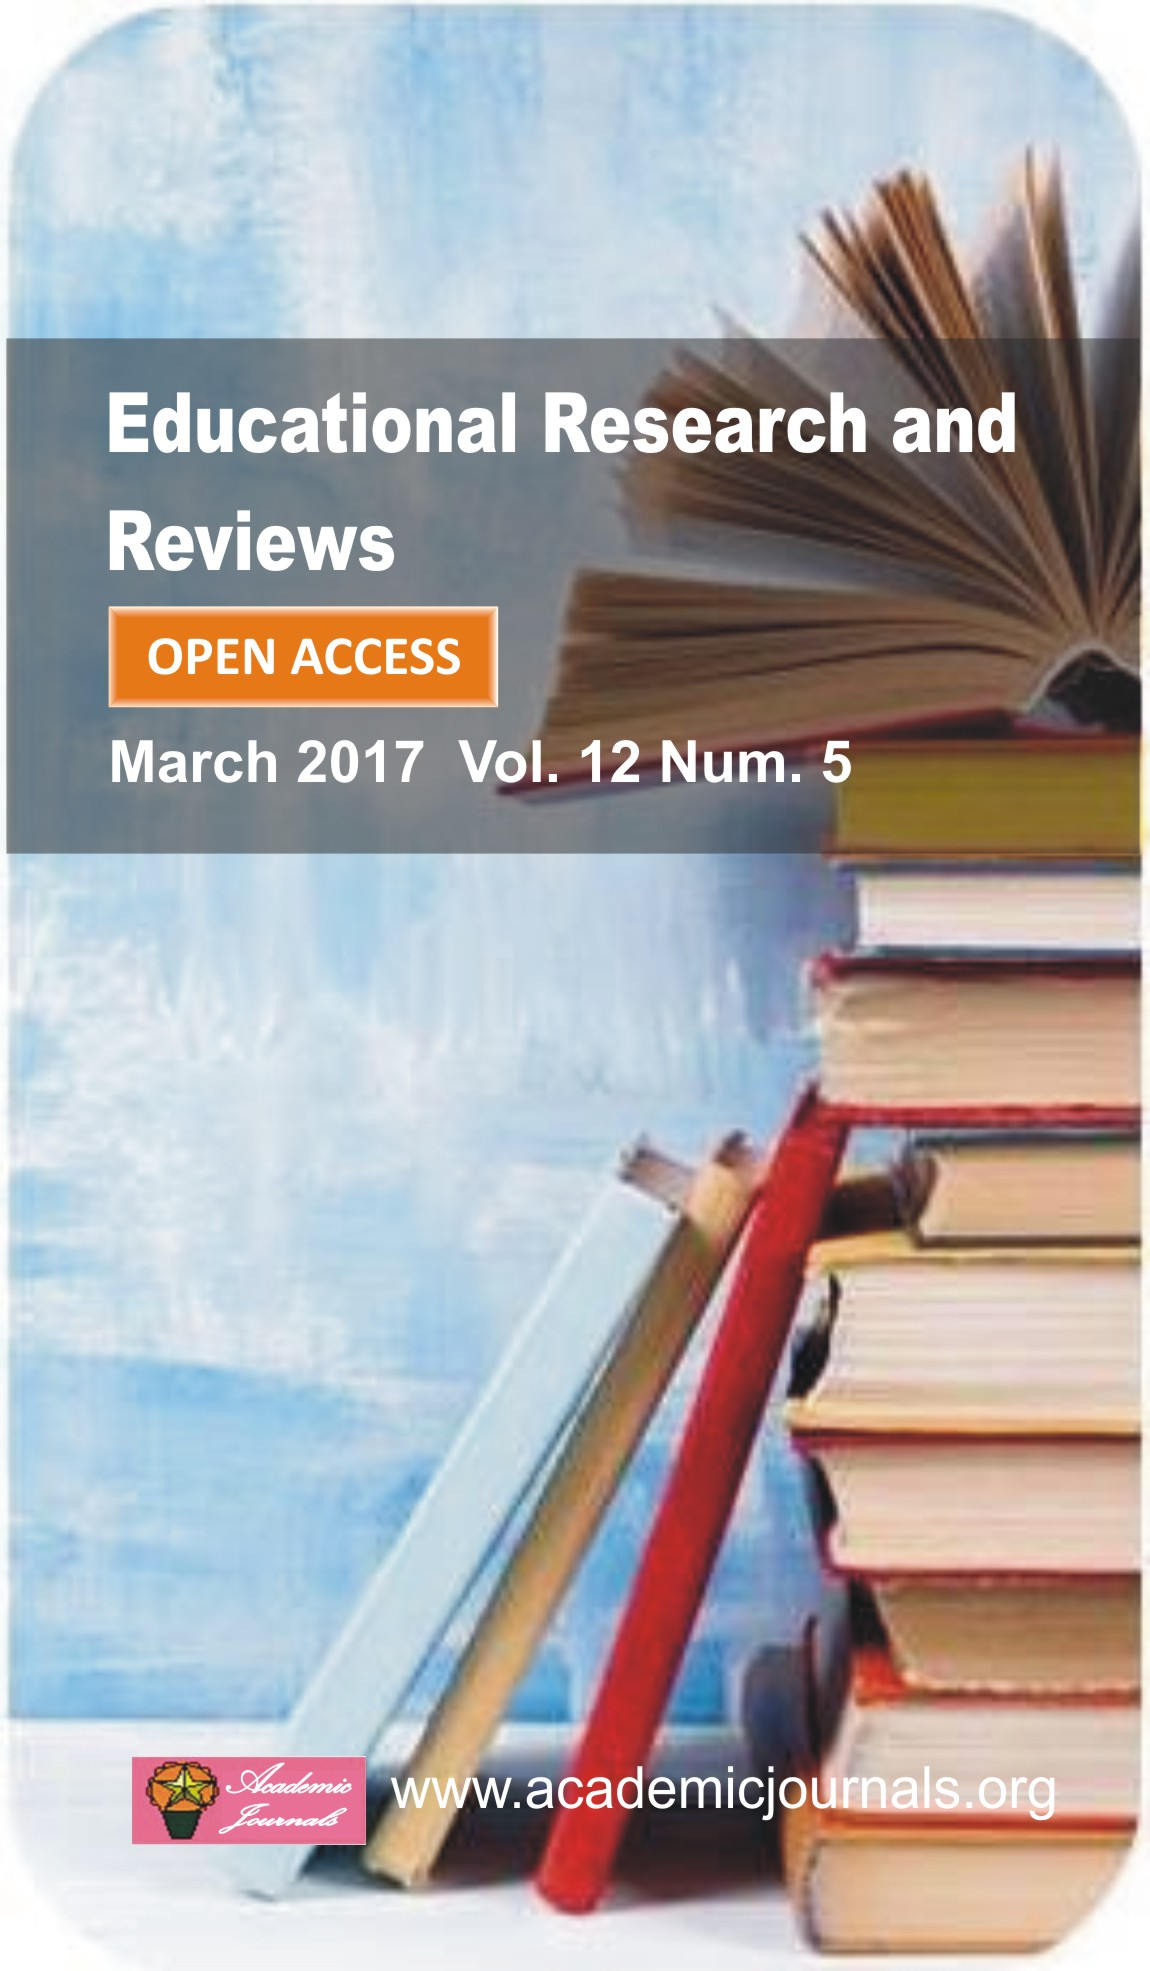 Educational Research and Reviews